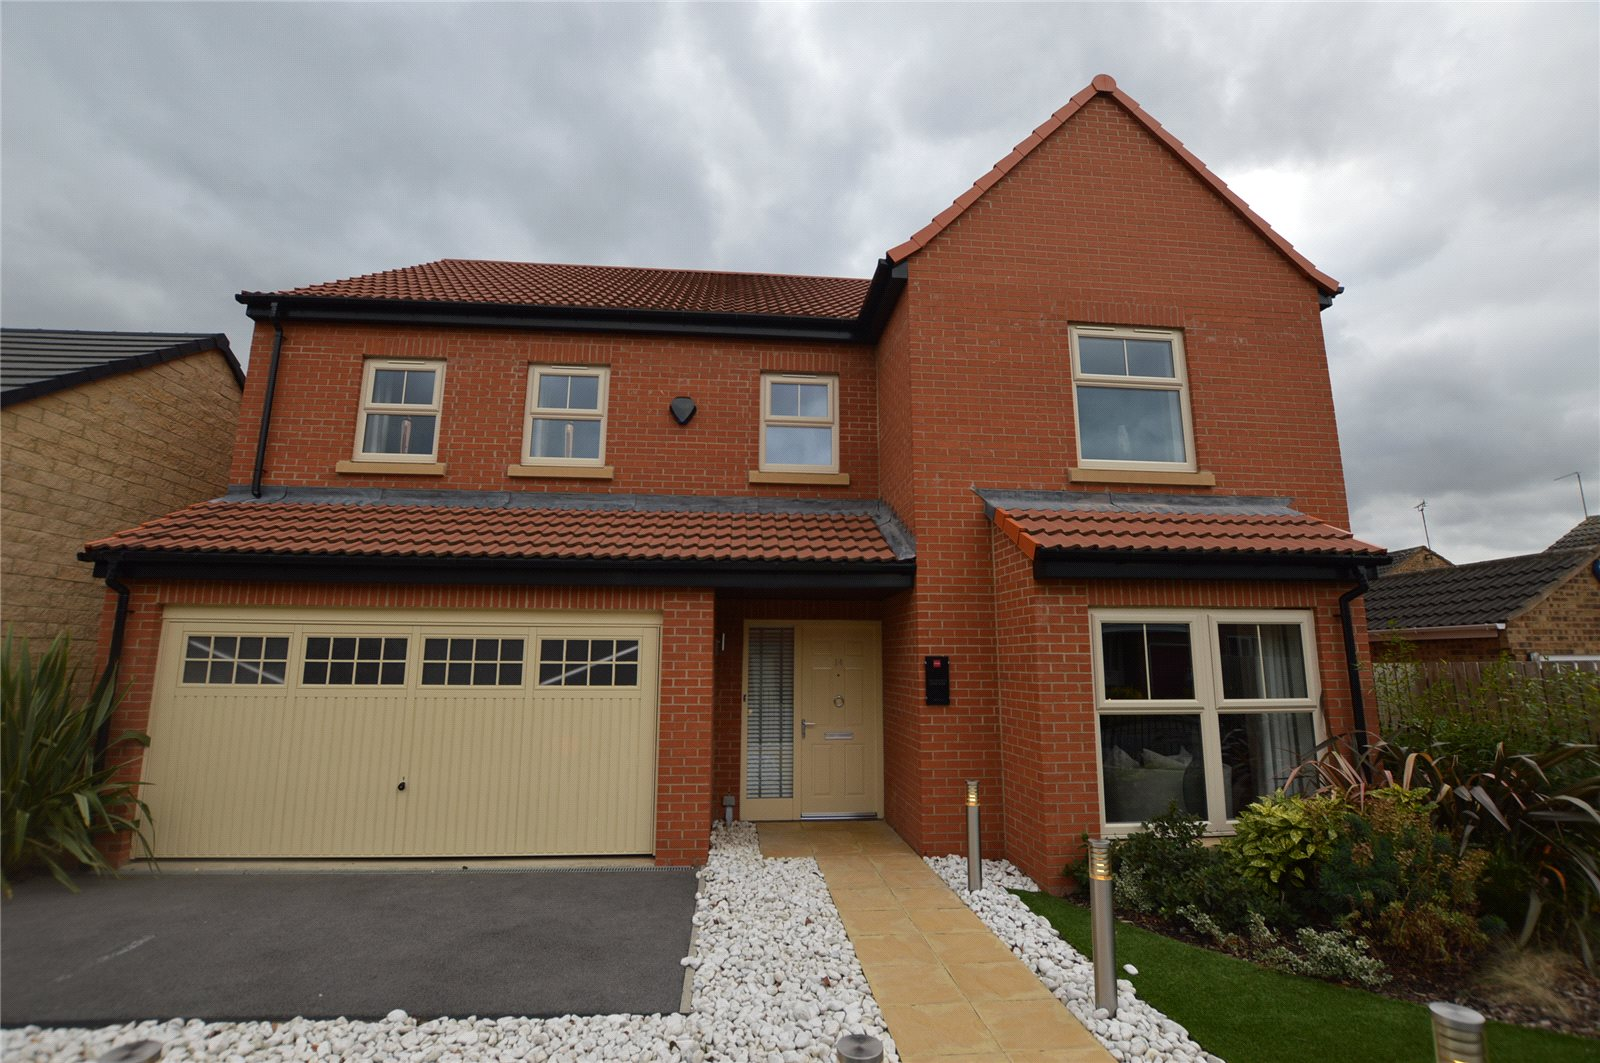 property for sale in Garforth, new build